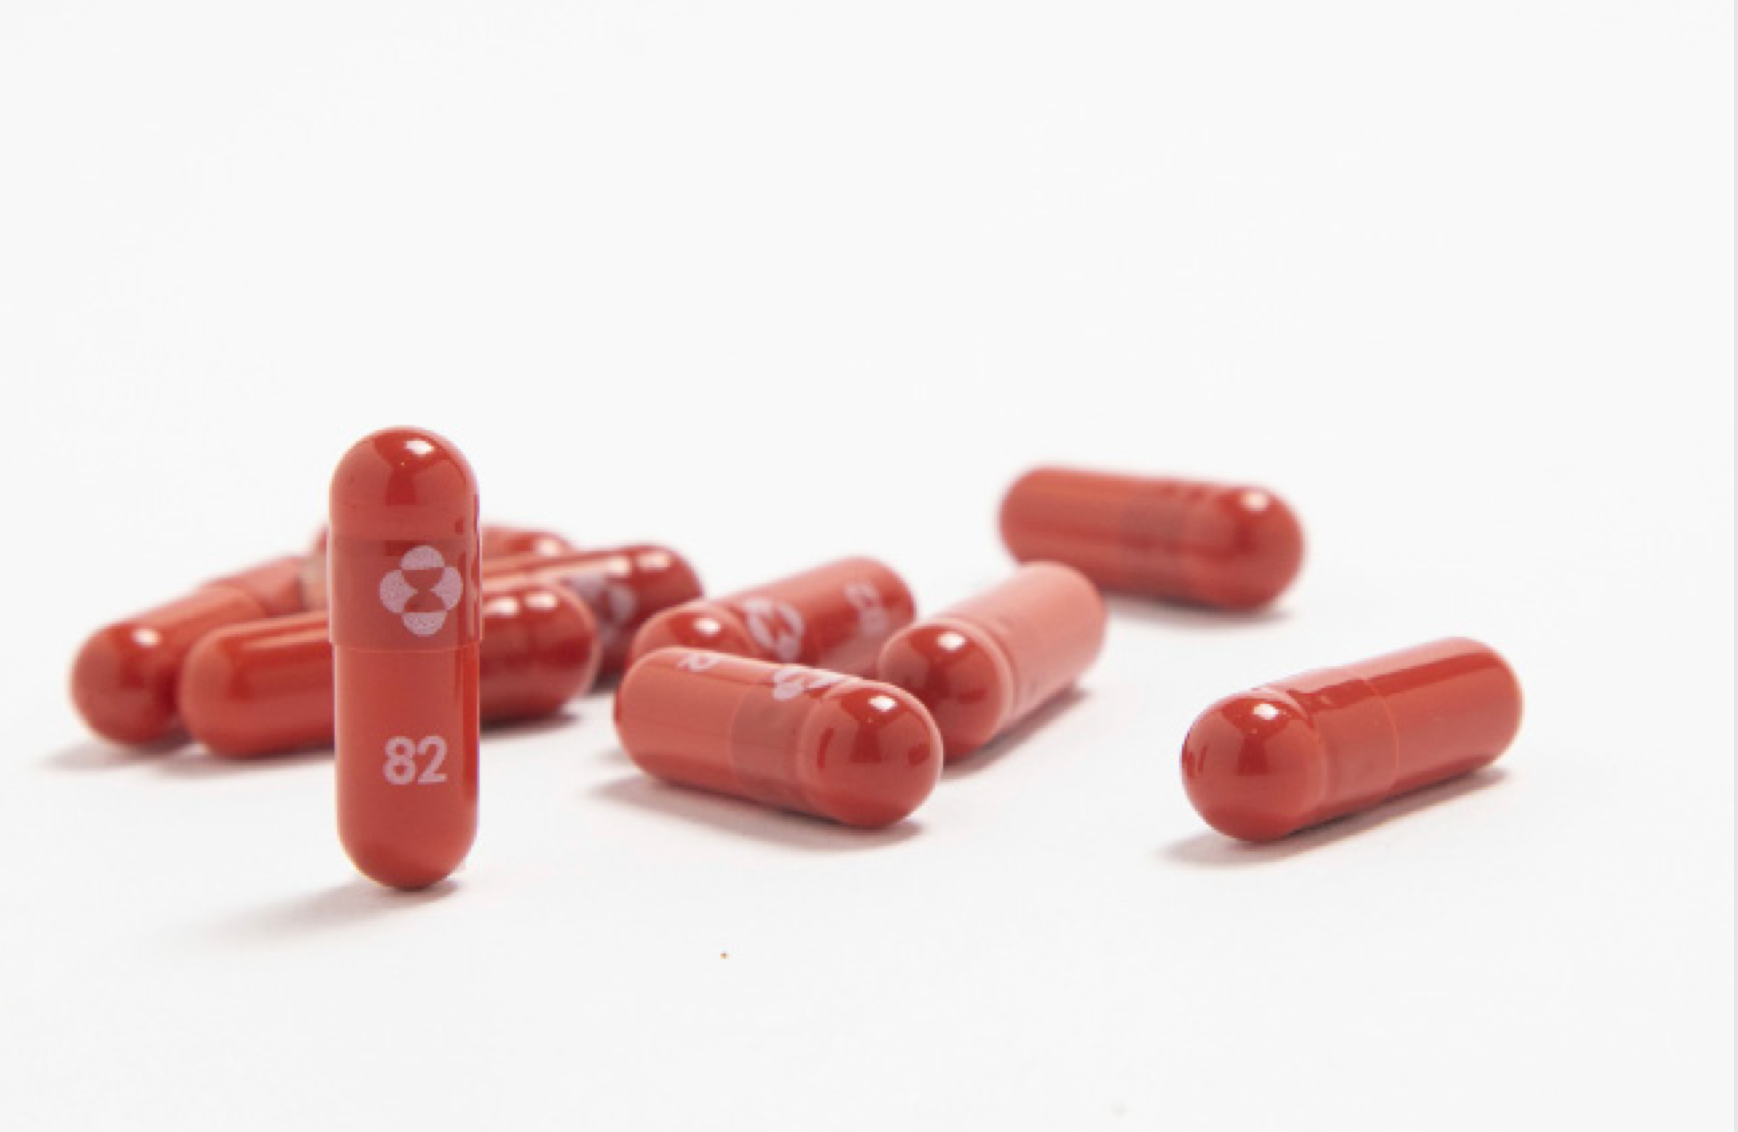 Covid-19: Asian nations rushing to place orders for new antiviral pill